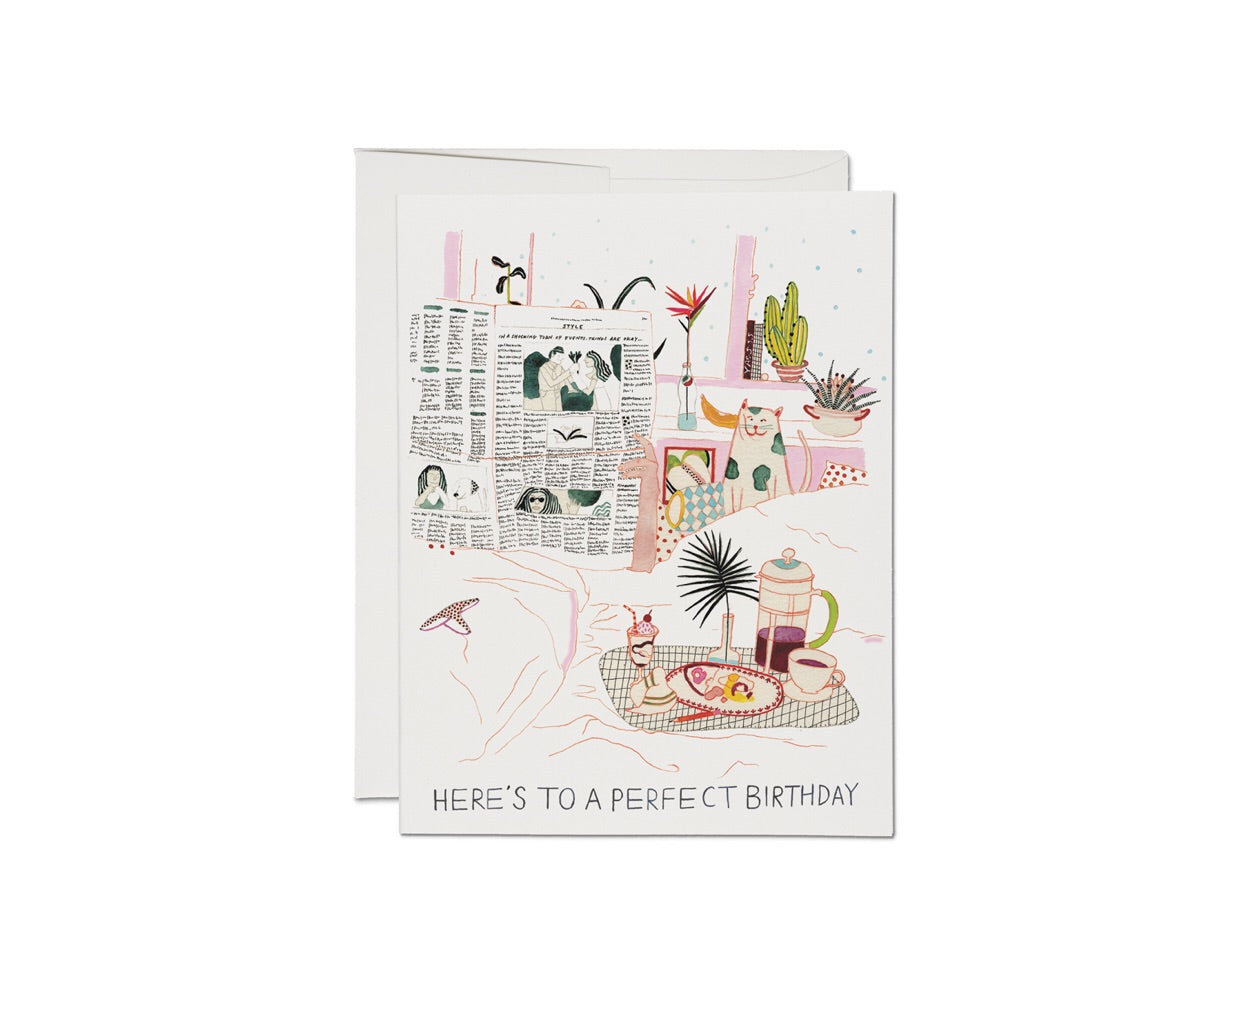 heres to a perfect birthday card red cap cards